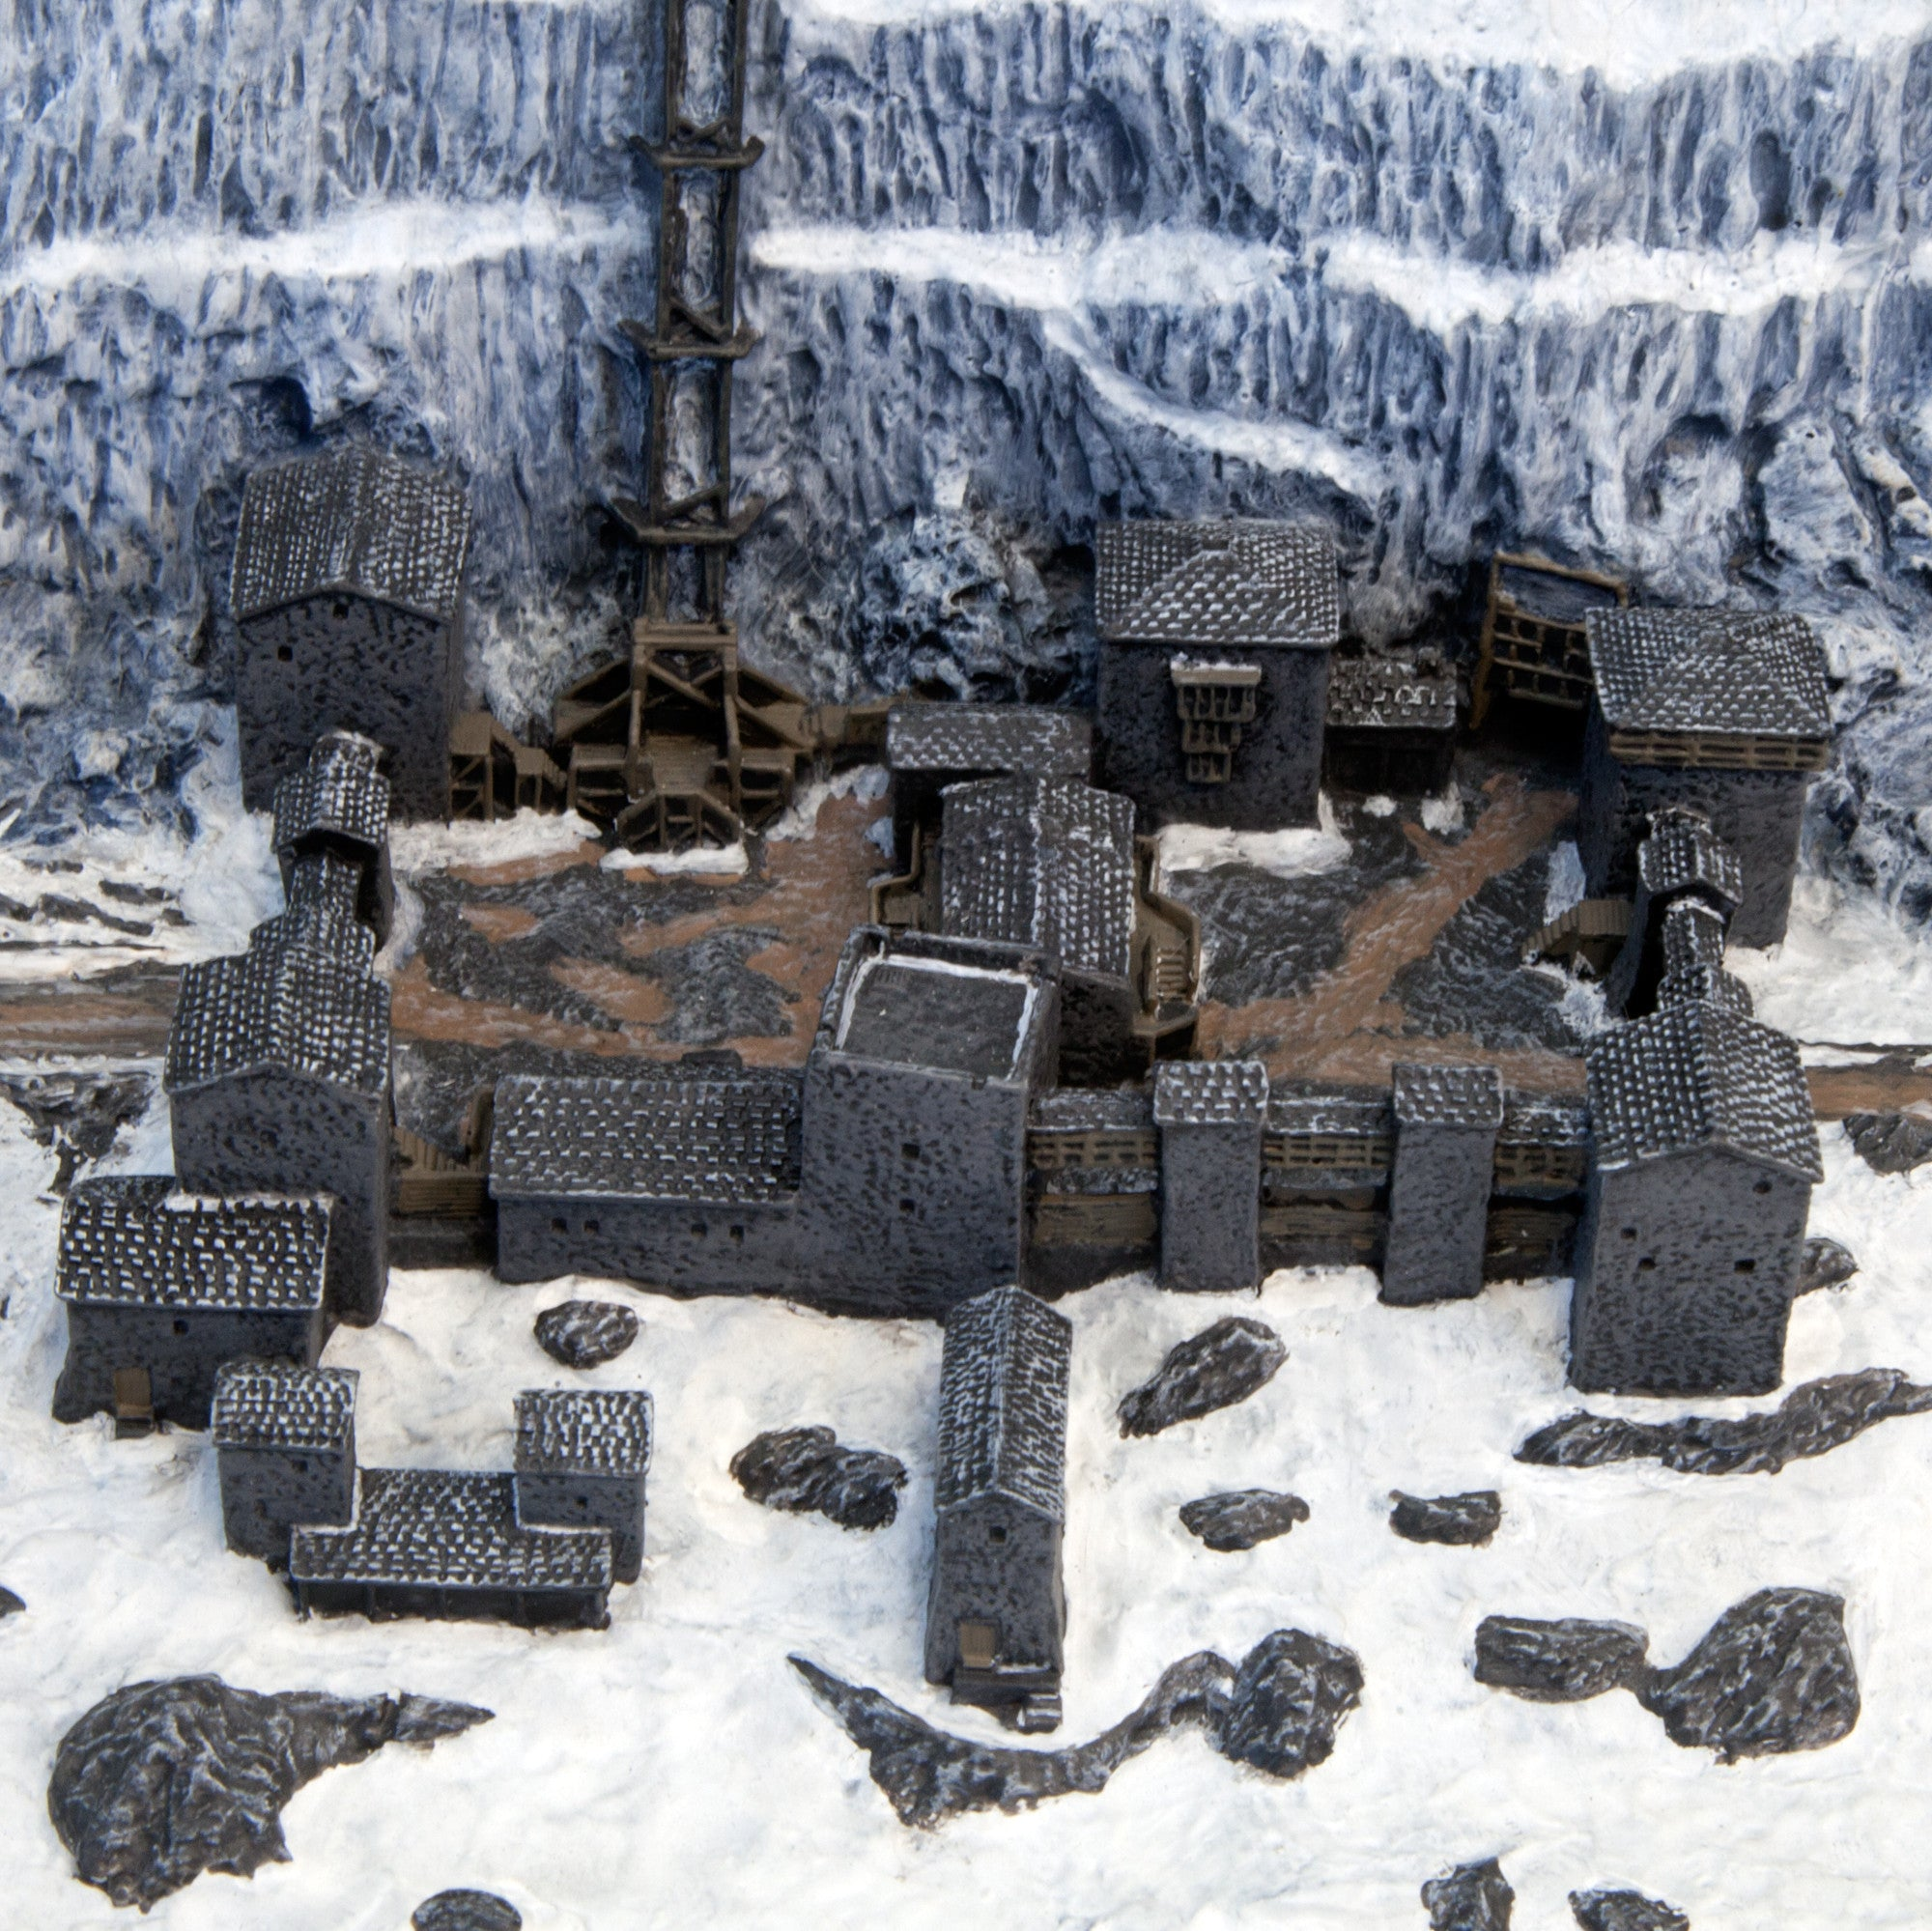 Game Of Thrones Castle Black The Wall Desktop Sculpture Movie